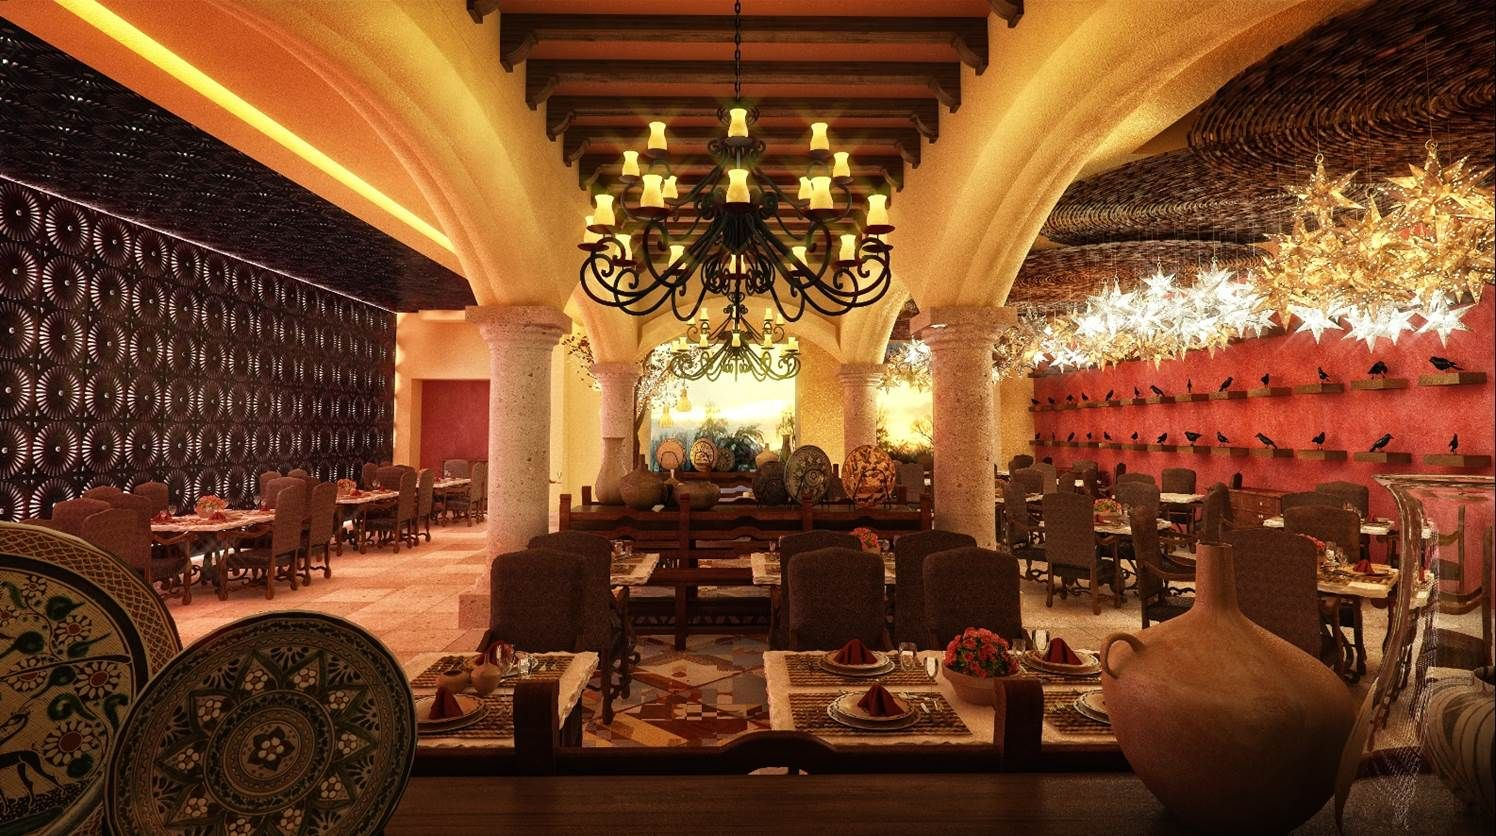 El Patio, shown in this rendering, boasts authentic Mexican dishes in a vibrant atmosphere.